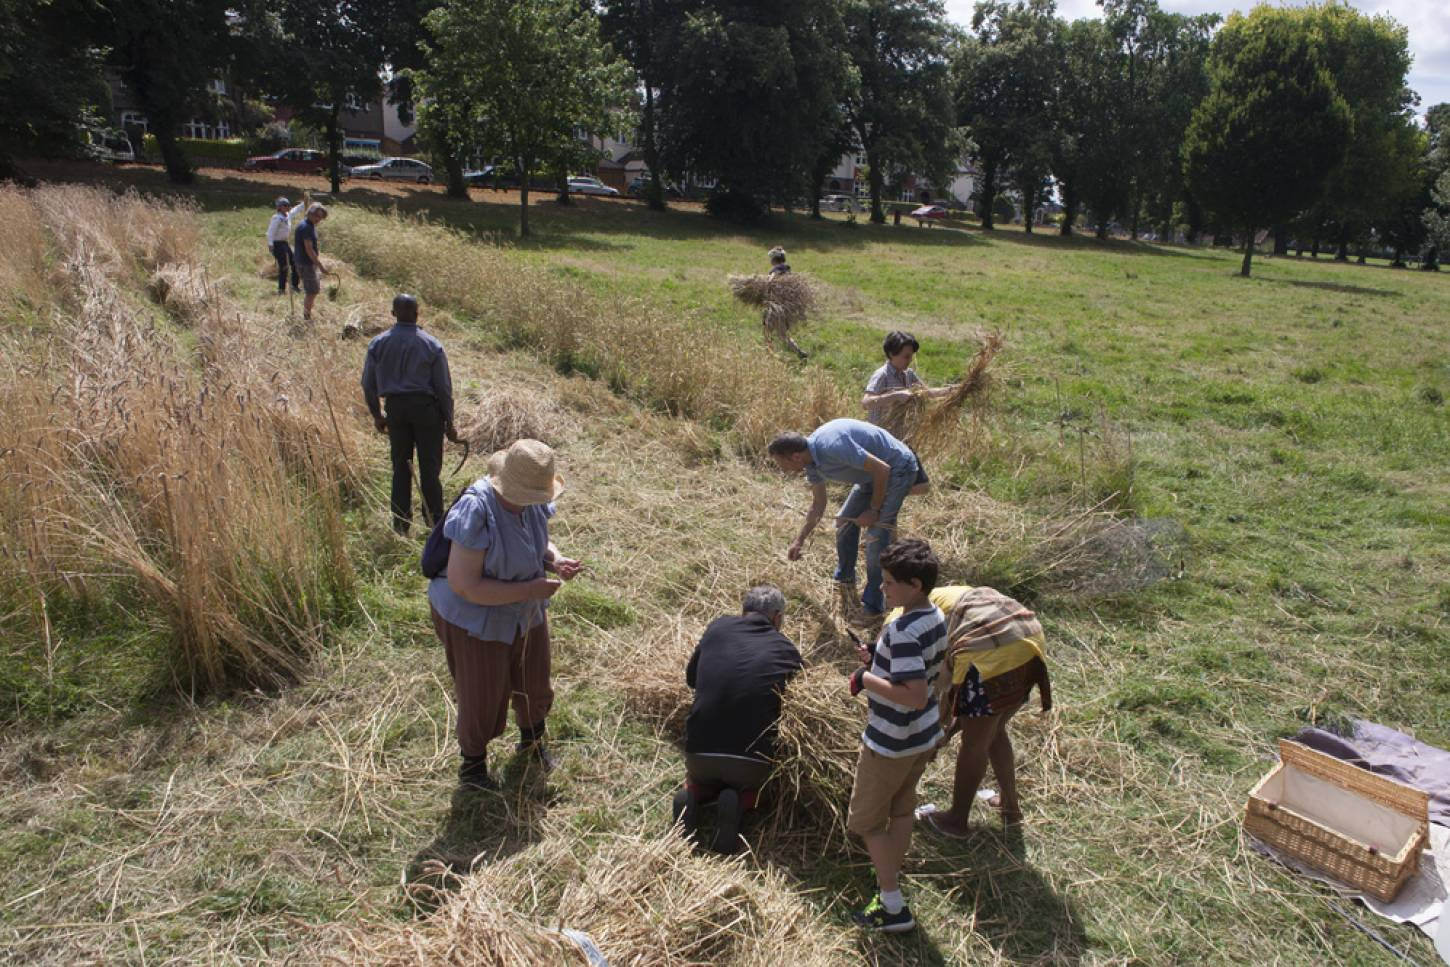 Ruskin Park harvest, pic  © <a href='http://www.bakerpictures.com/index' target='_blank'>Richard Baker</a> - 12:21pm&nbsp;8<sup>th</sup>&nbsp;Aug.&nbsp;'16